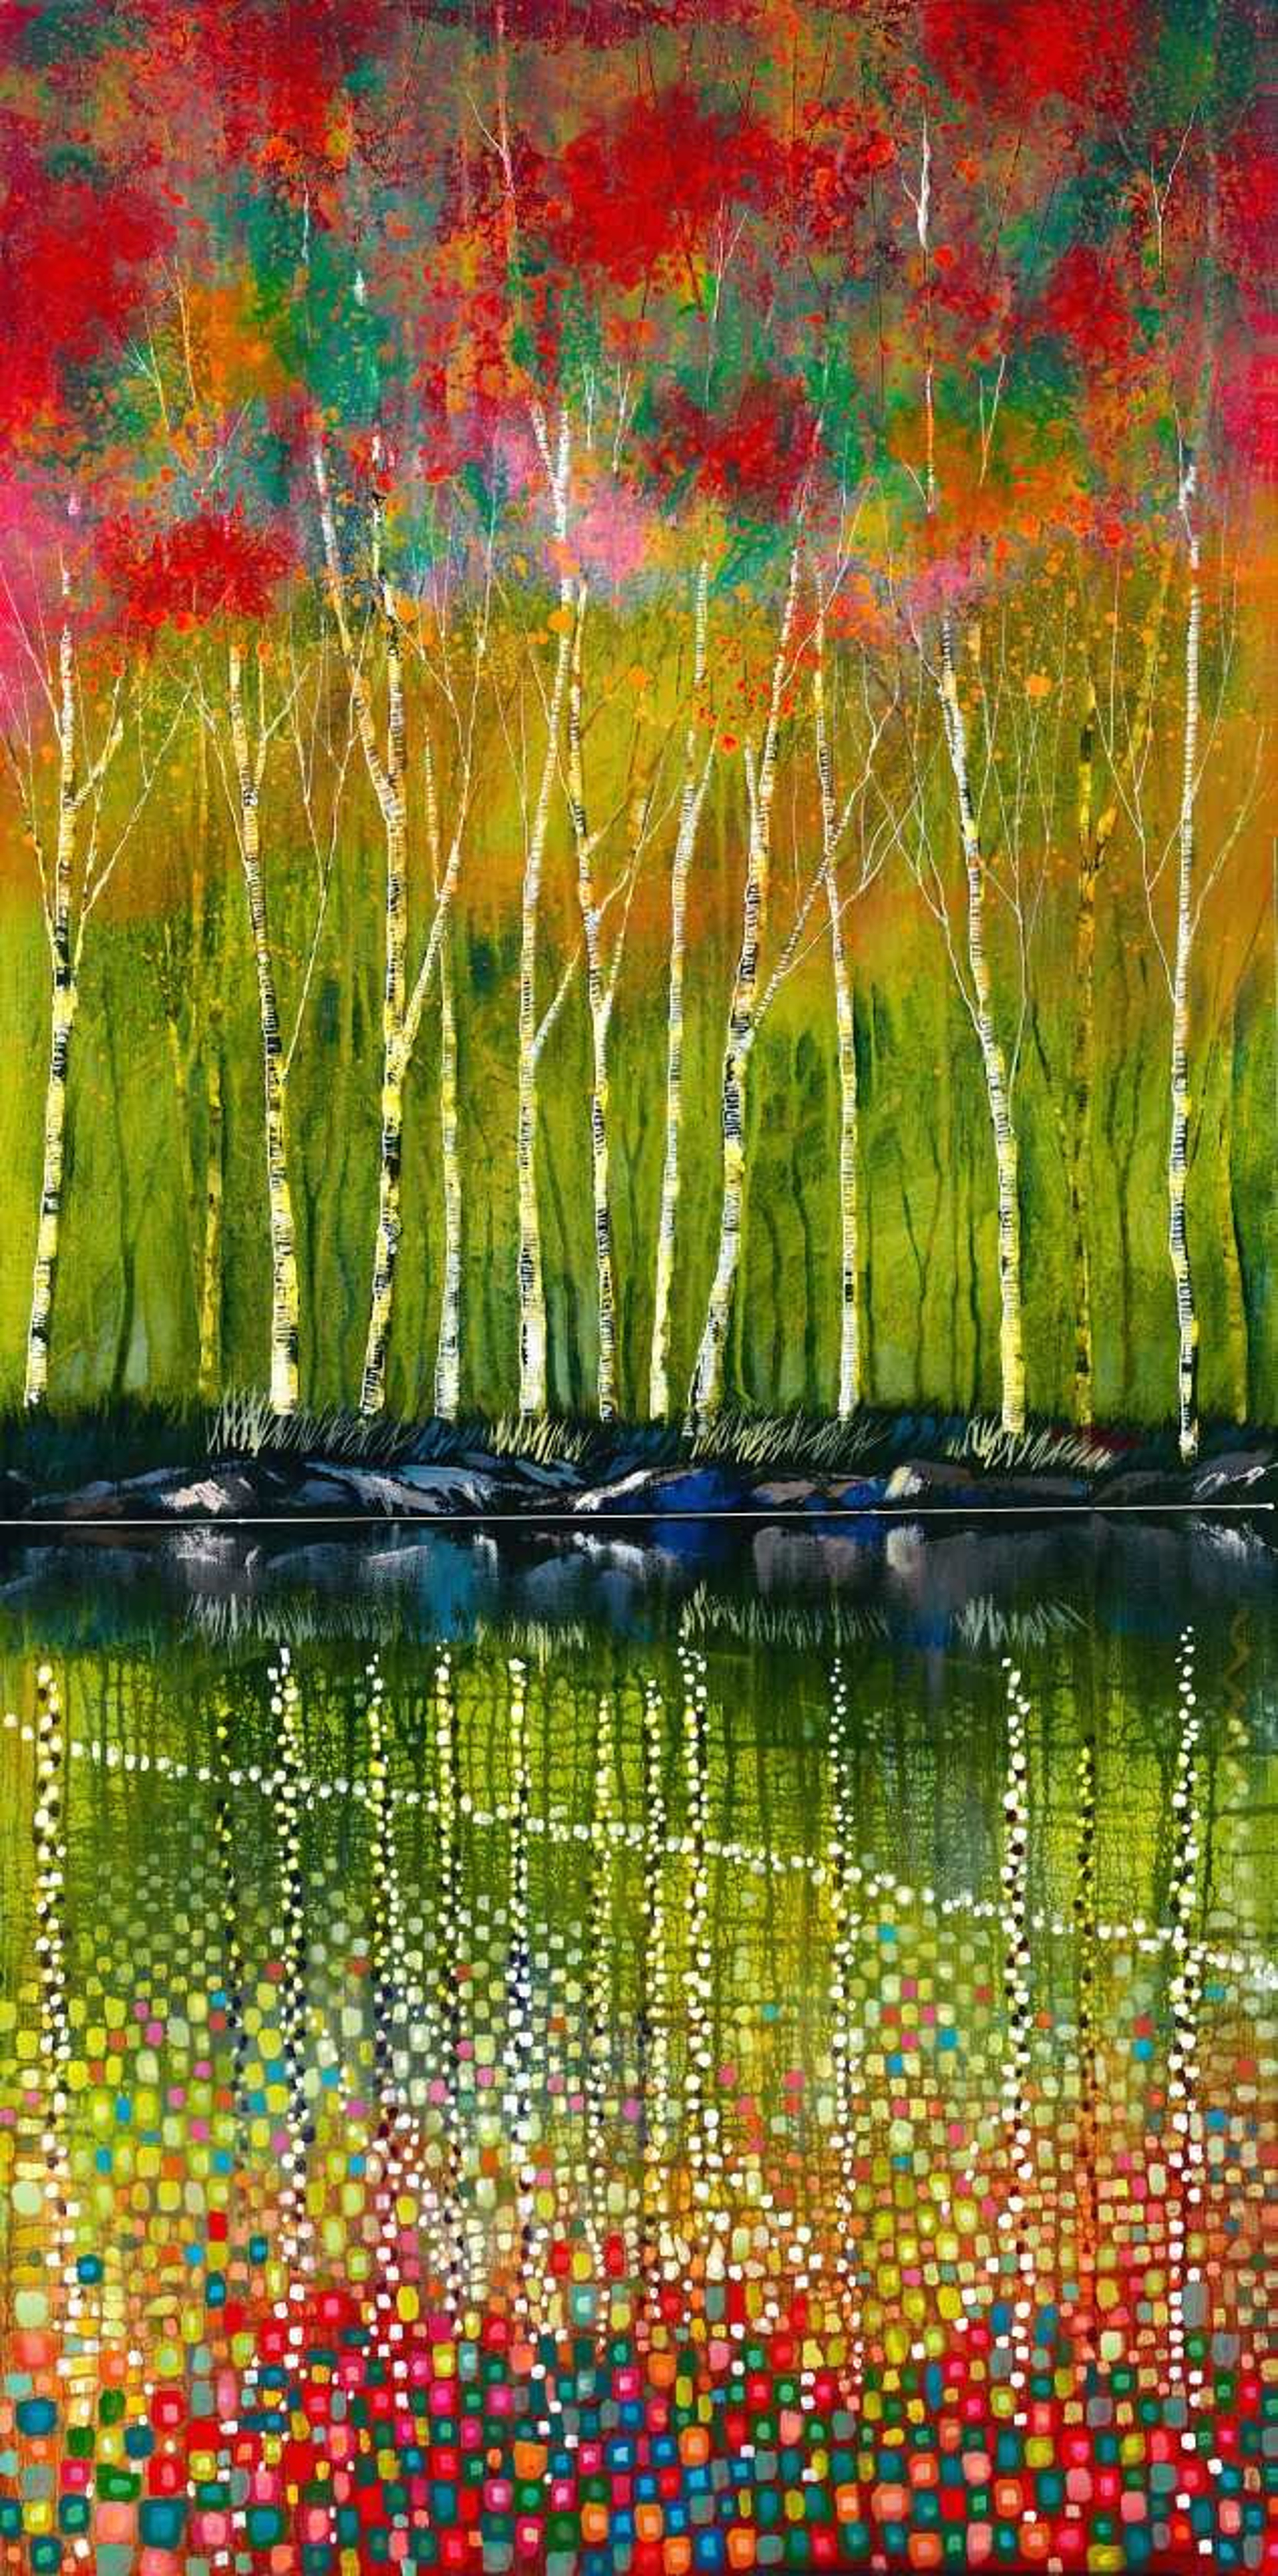 Symphonic Birch by Ford Smith